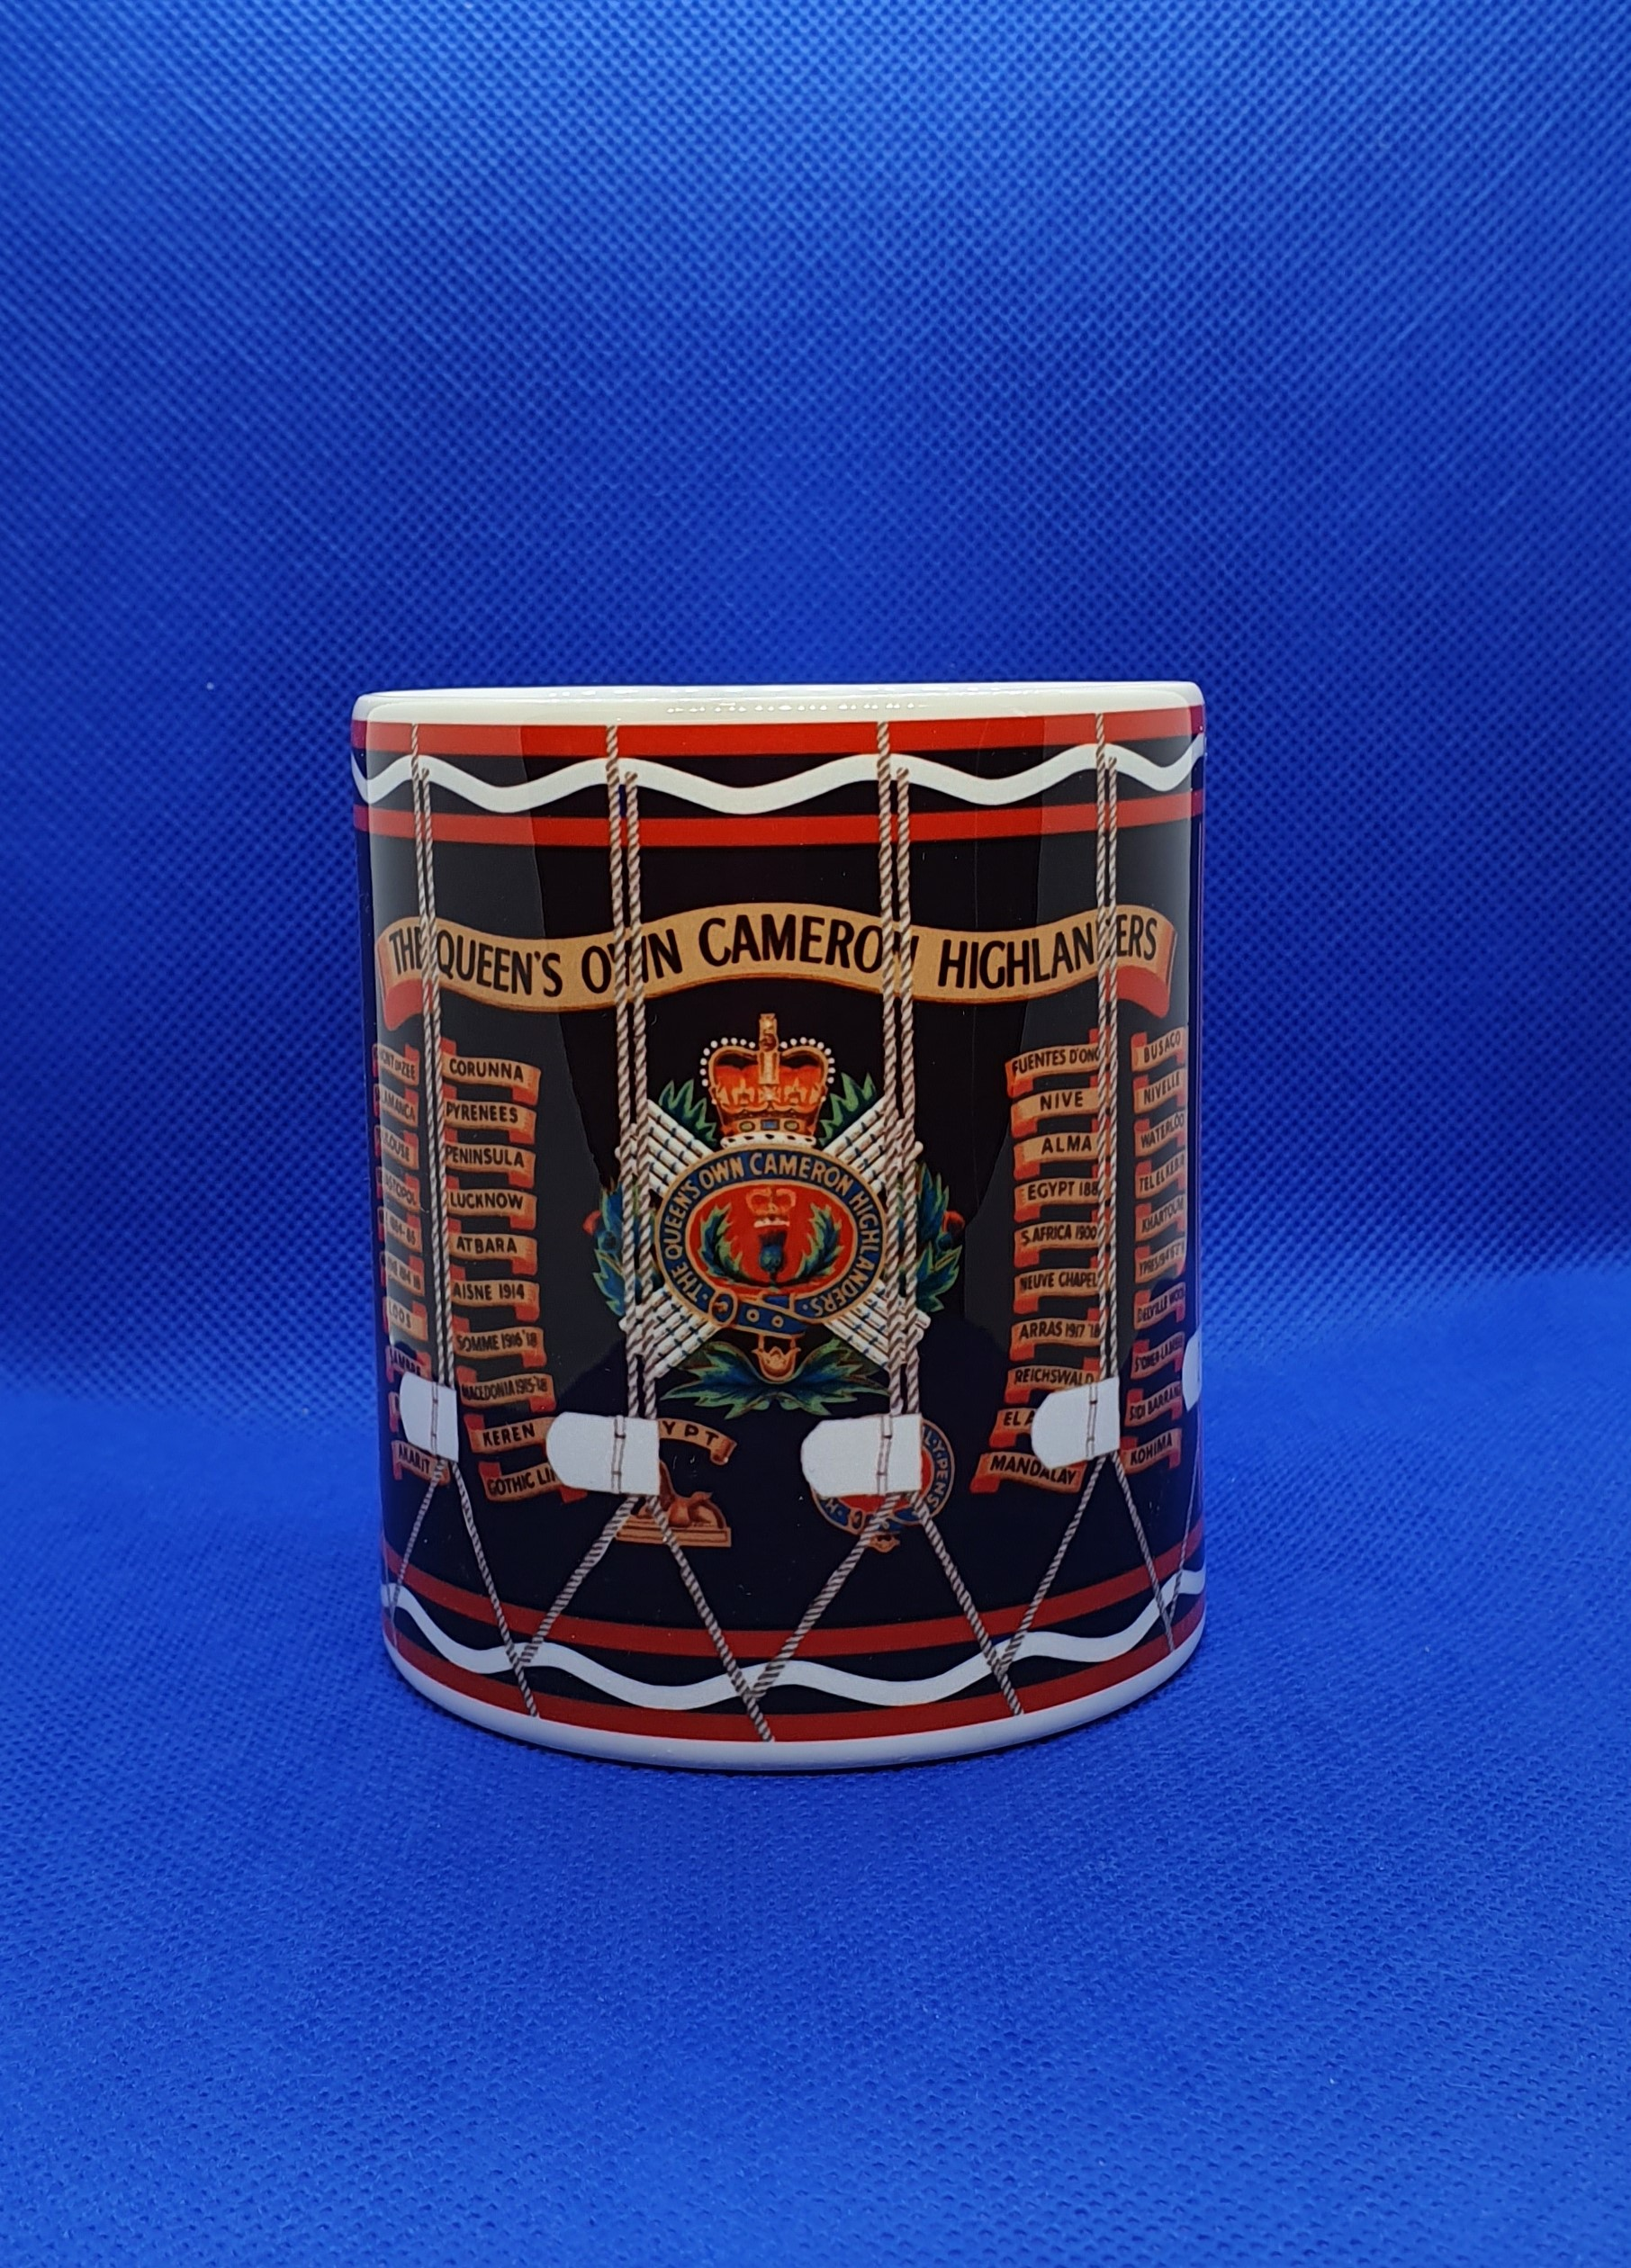 Queen's Own Cameron Highlanders Drum Mug